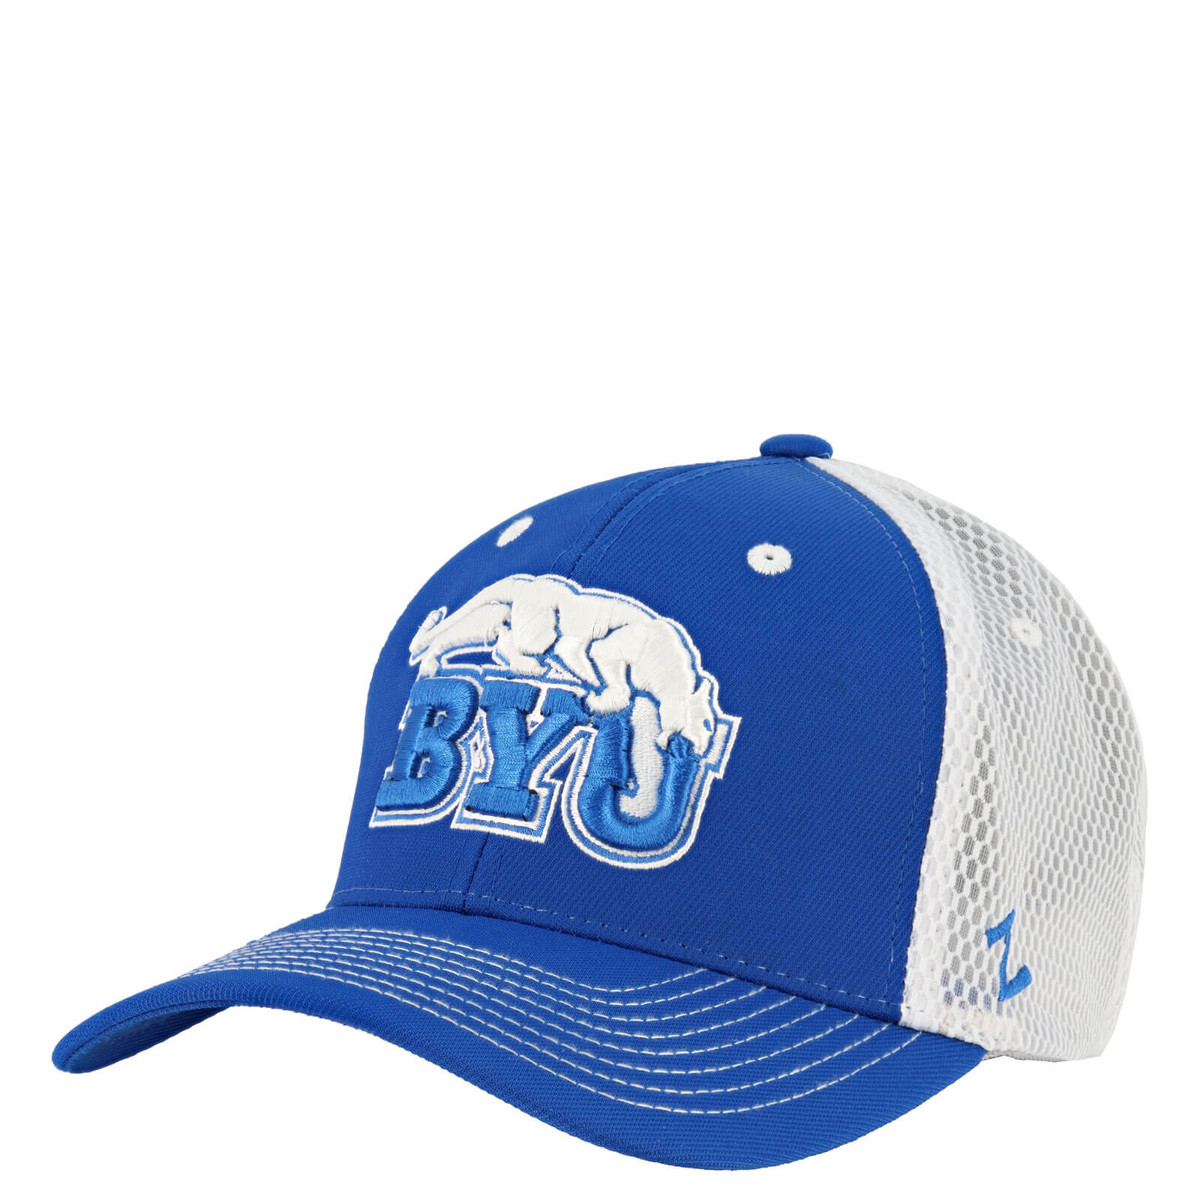 3b257323b2506 Retro Cougar Over BYU Hat - Zephyr